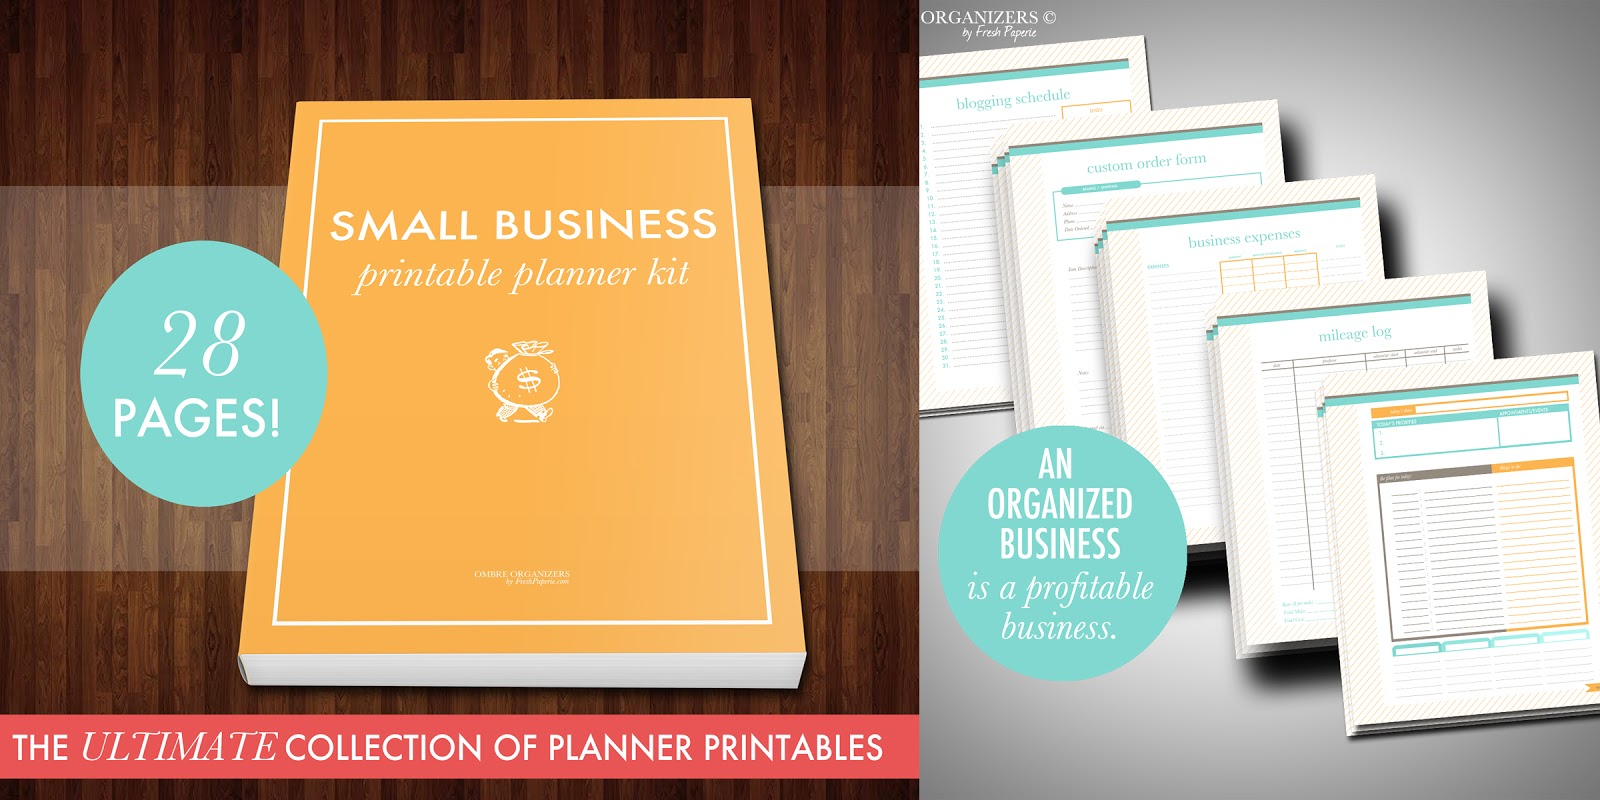 Small business planners